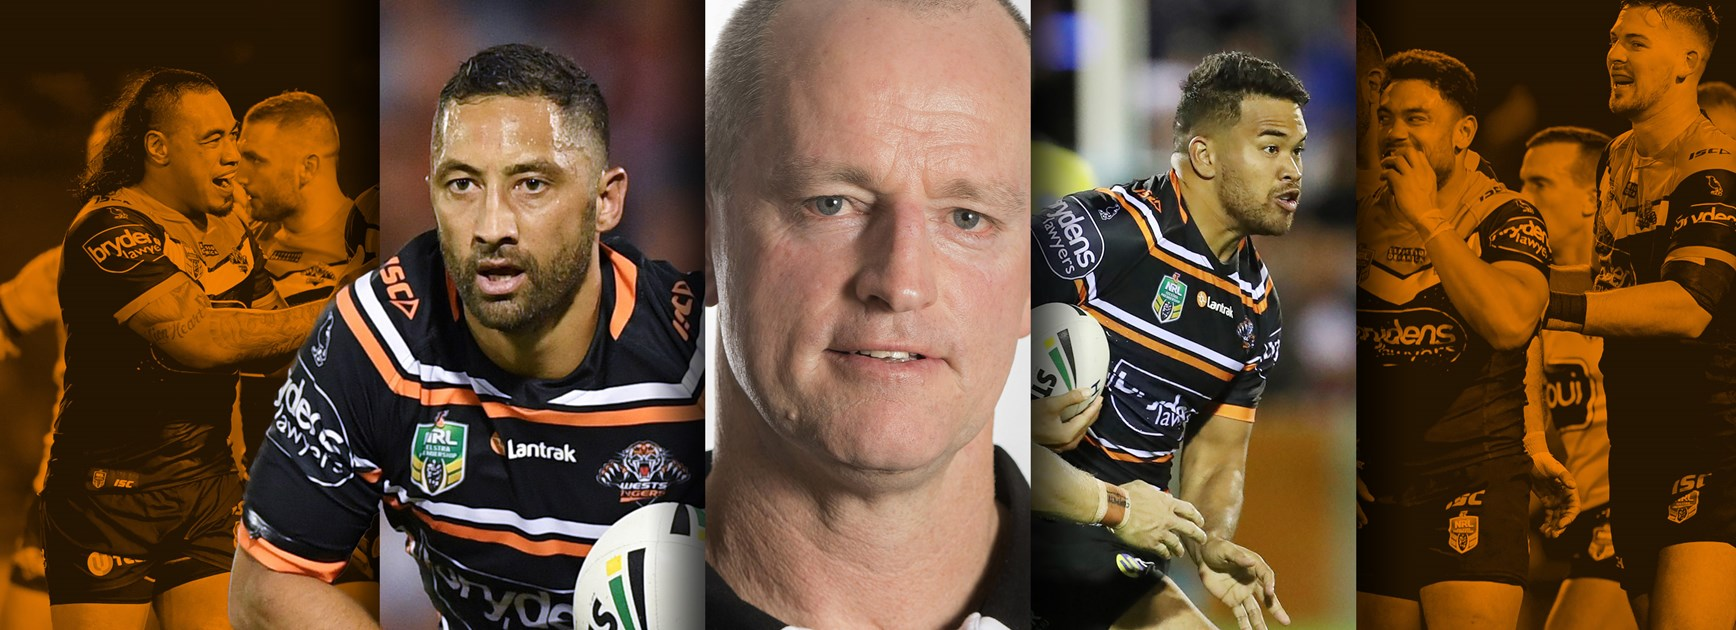 Wests Tigers 2019 season preview